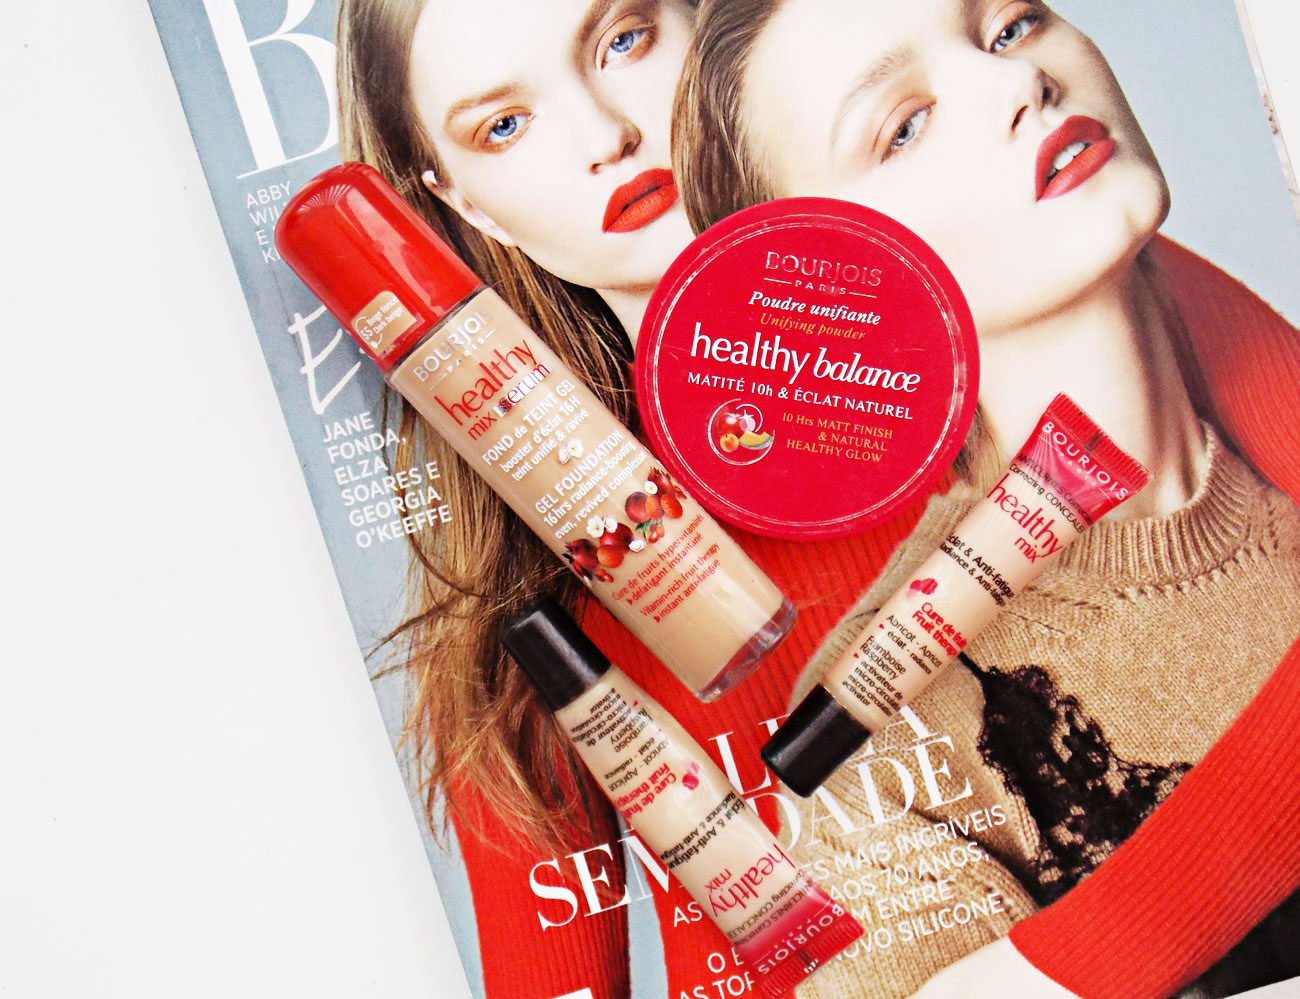 BOURJOIS_HEALTHY_MIX-REVIEW